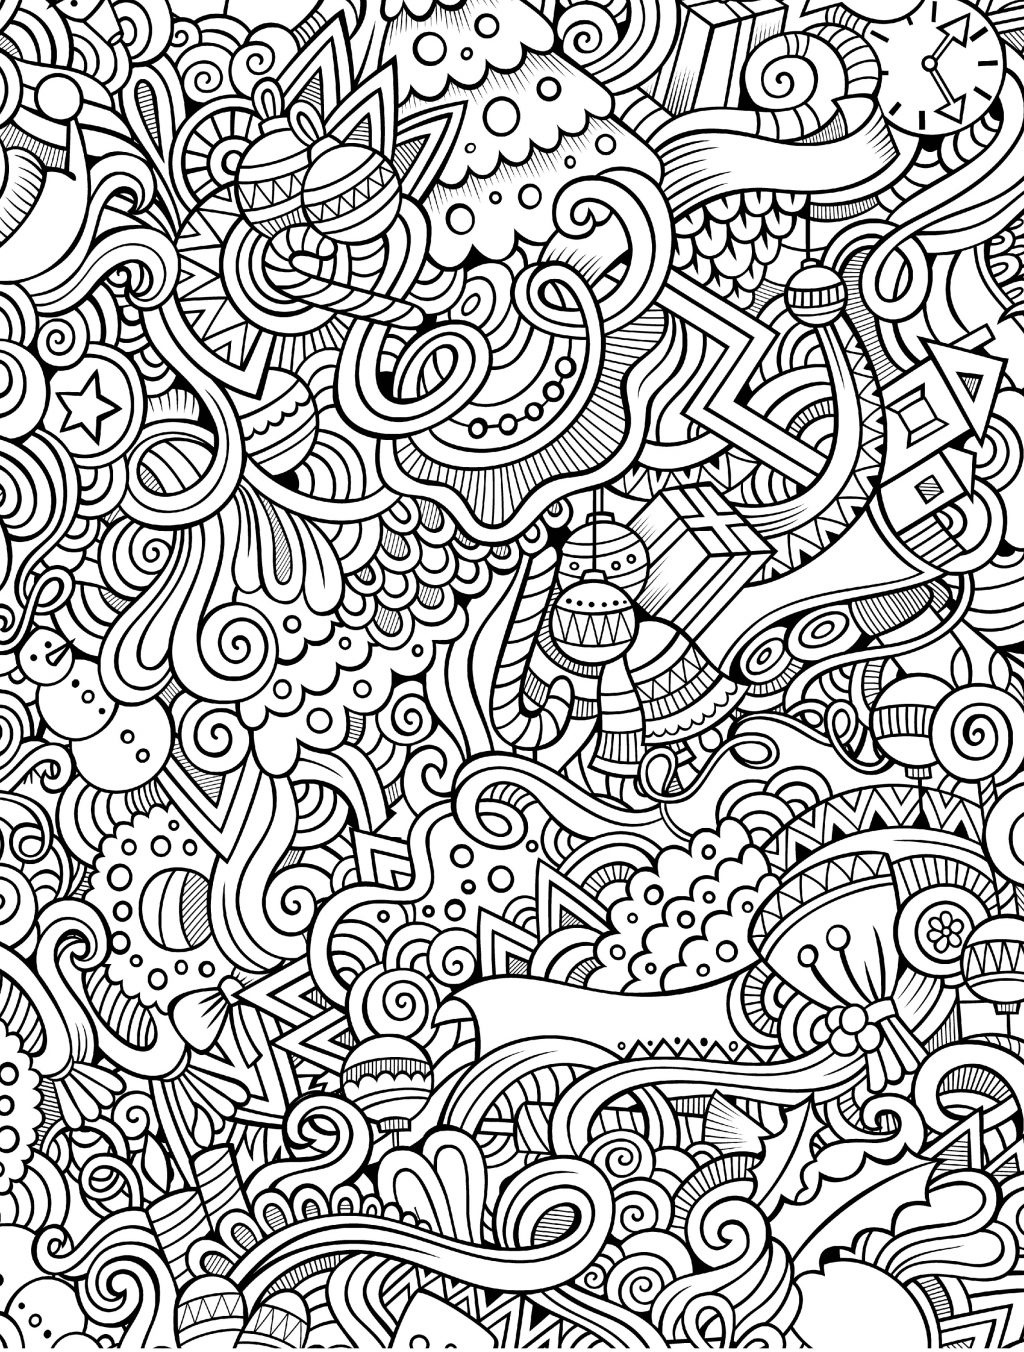 Coloring Ideas : Remarkable Printable Coloring Book Pages Sheets - Free Printable Coloring Book Pages For Adults